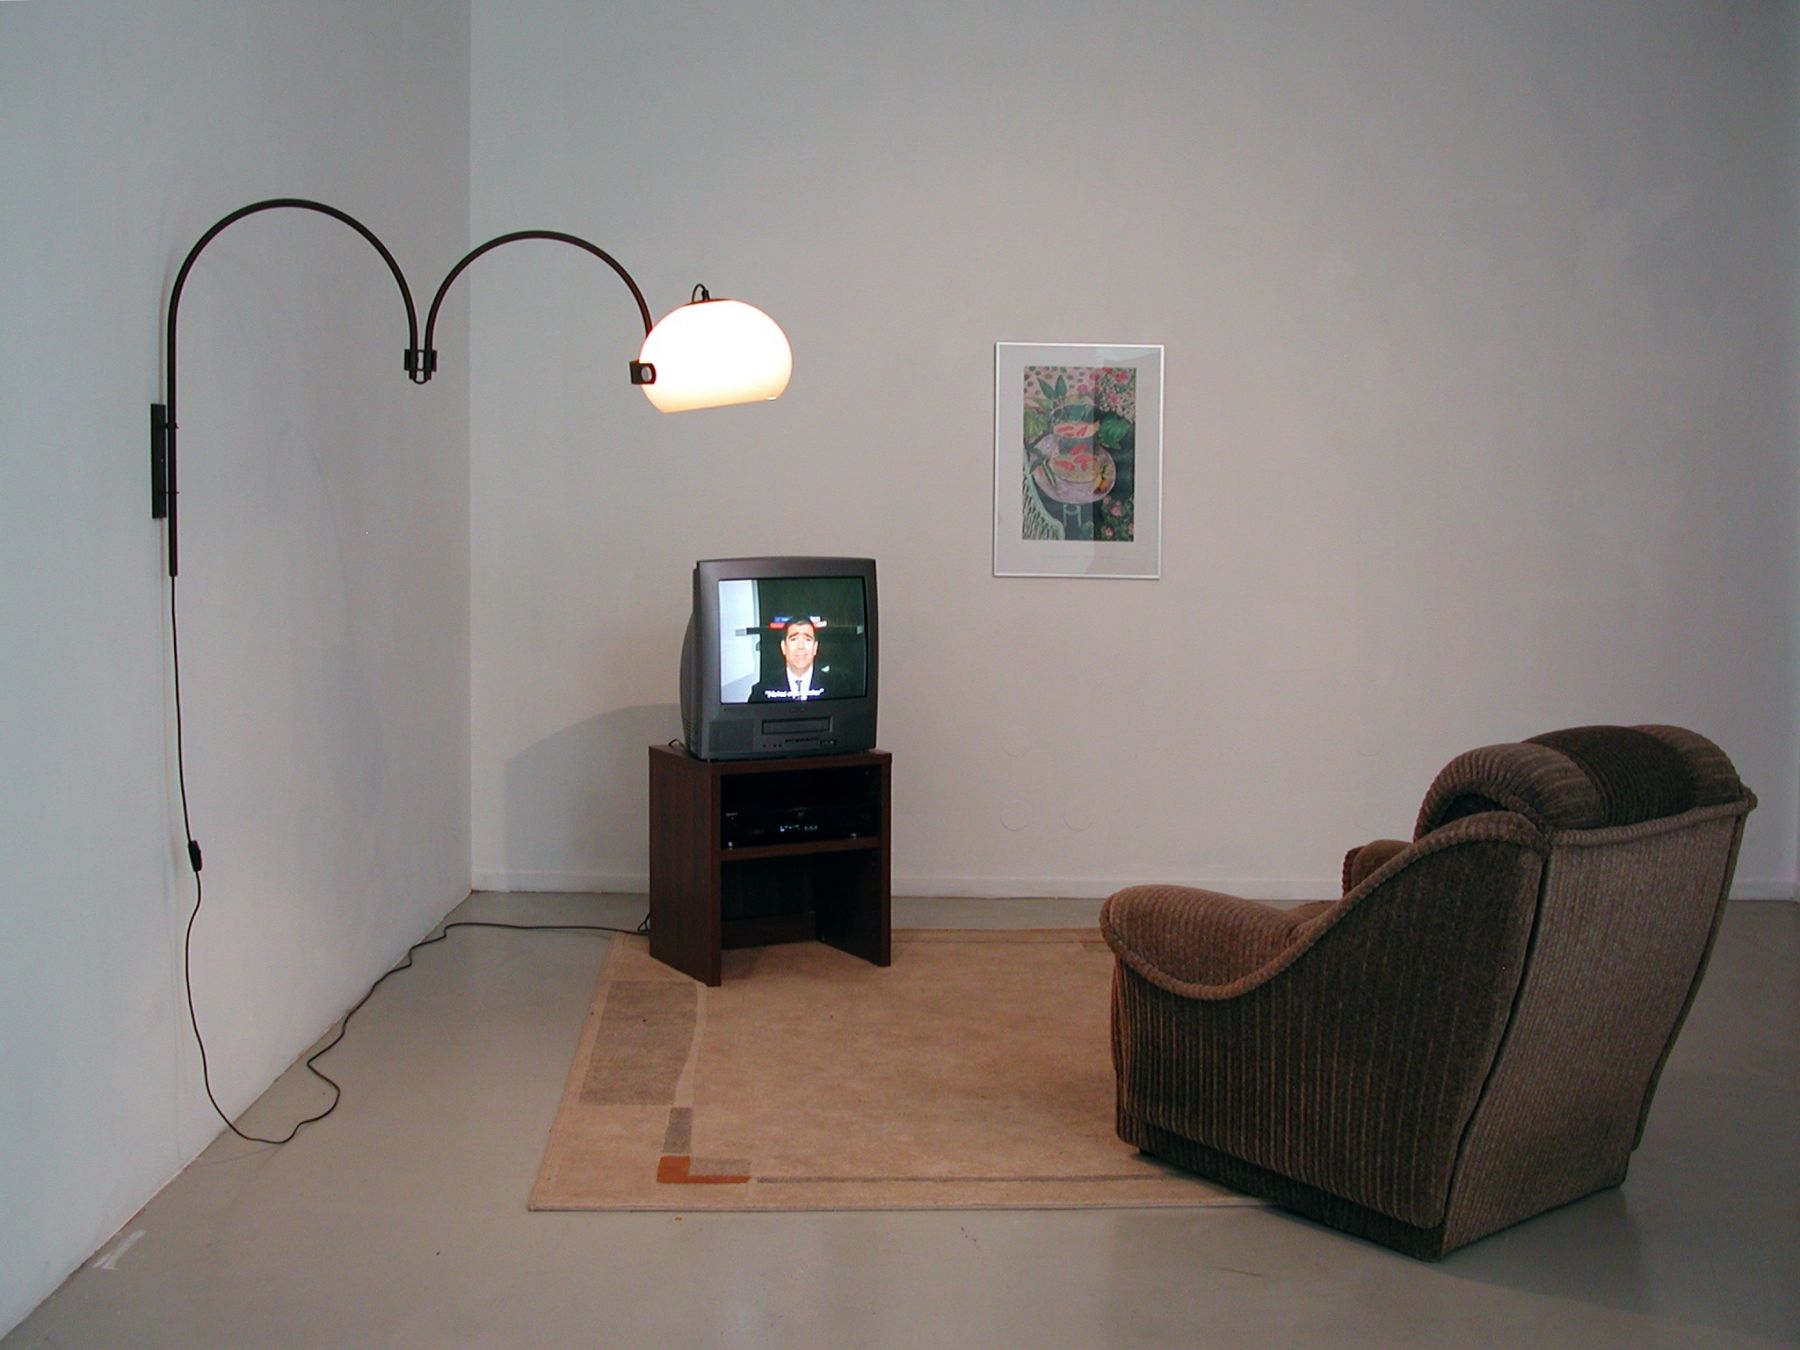 Michael Smith  Famous Quotes from Art History, 2001/2003  Installation with video  Installation view, Ellen de Bruijne Projects, Amsterdam, 2004